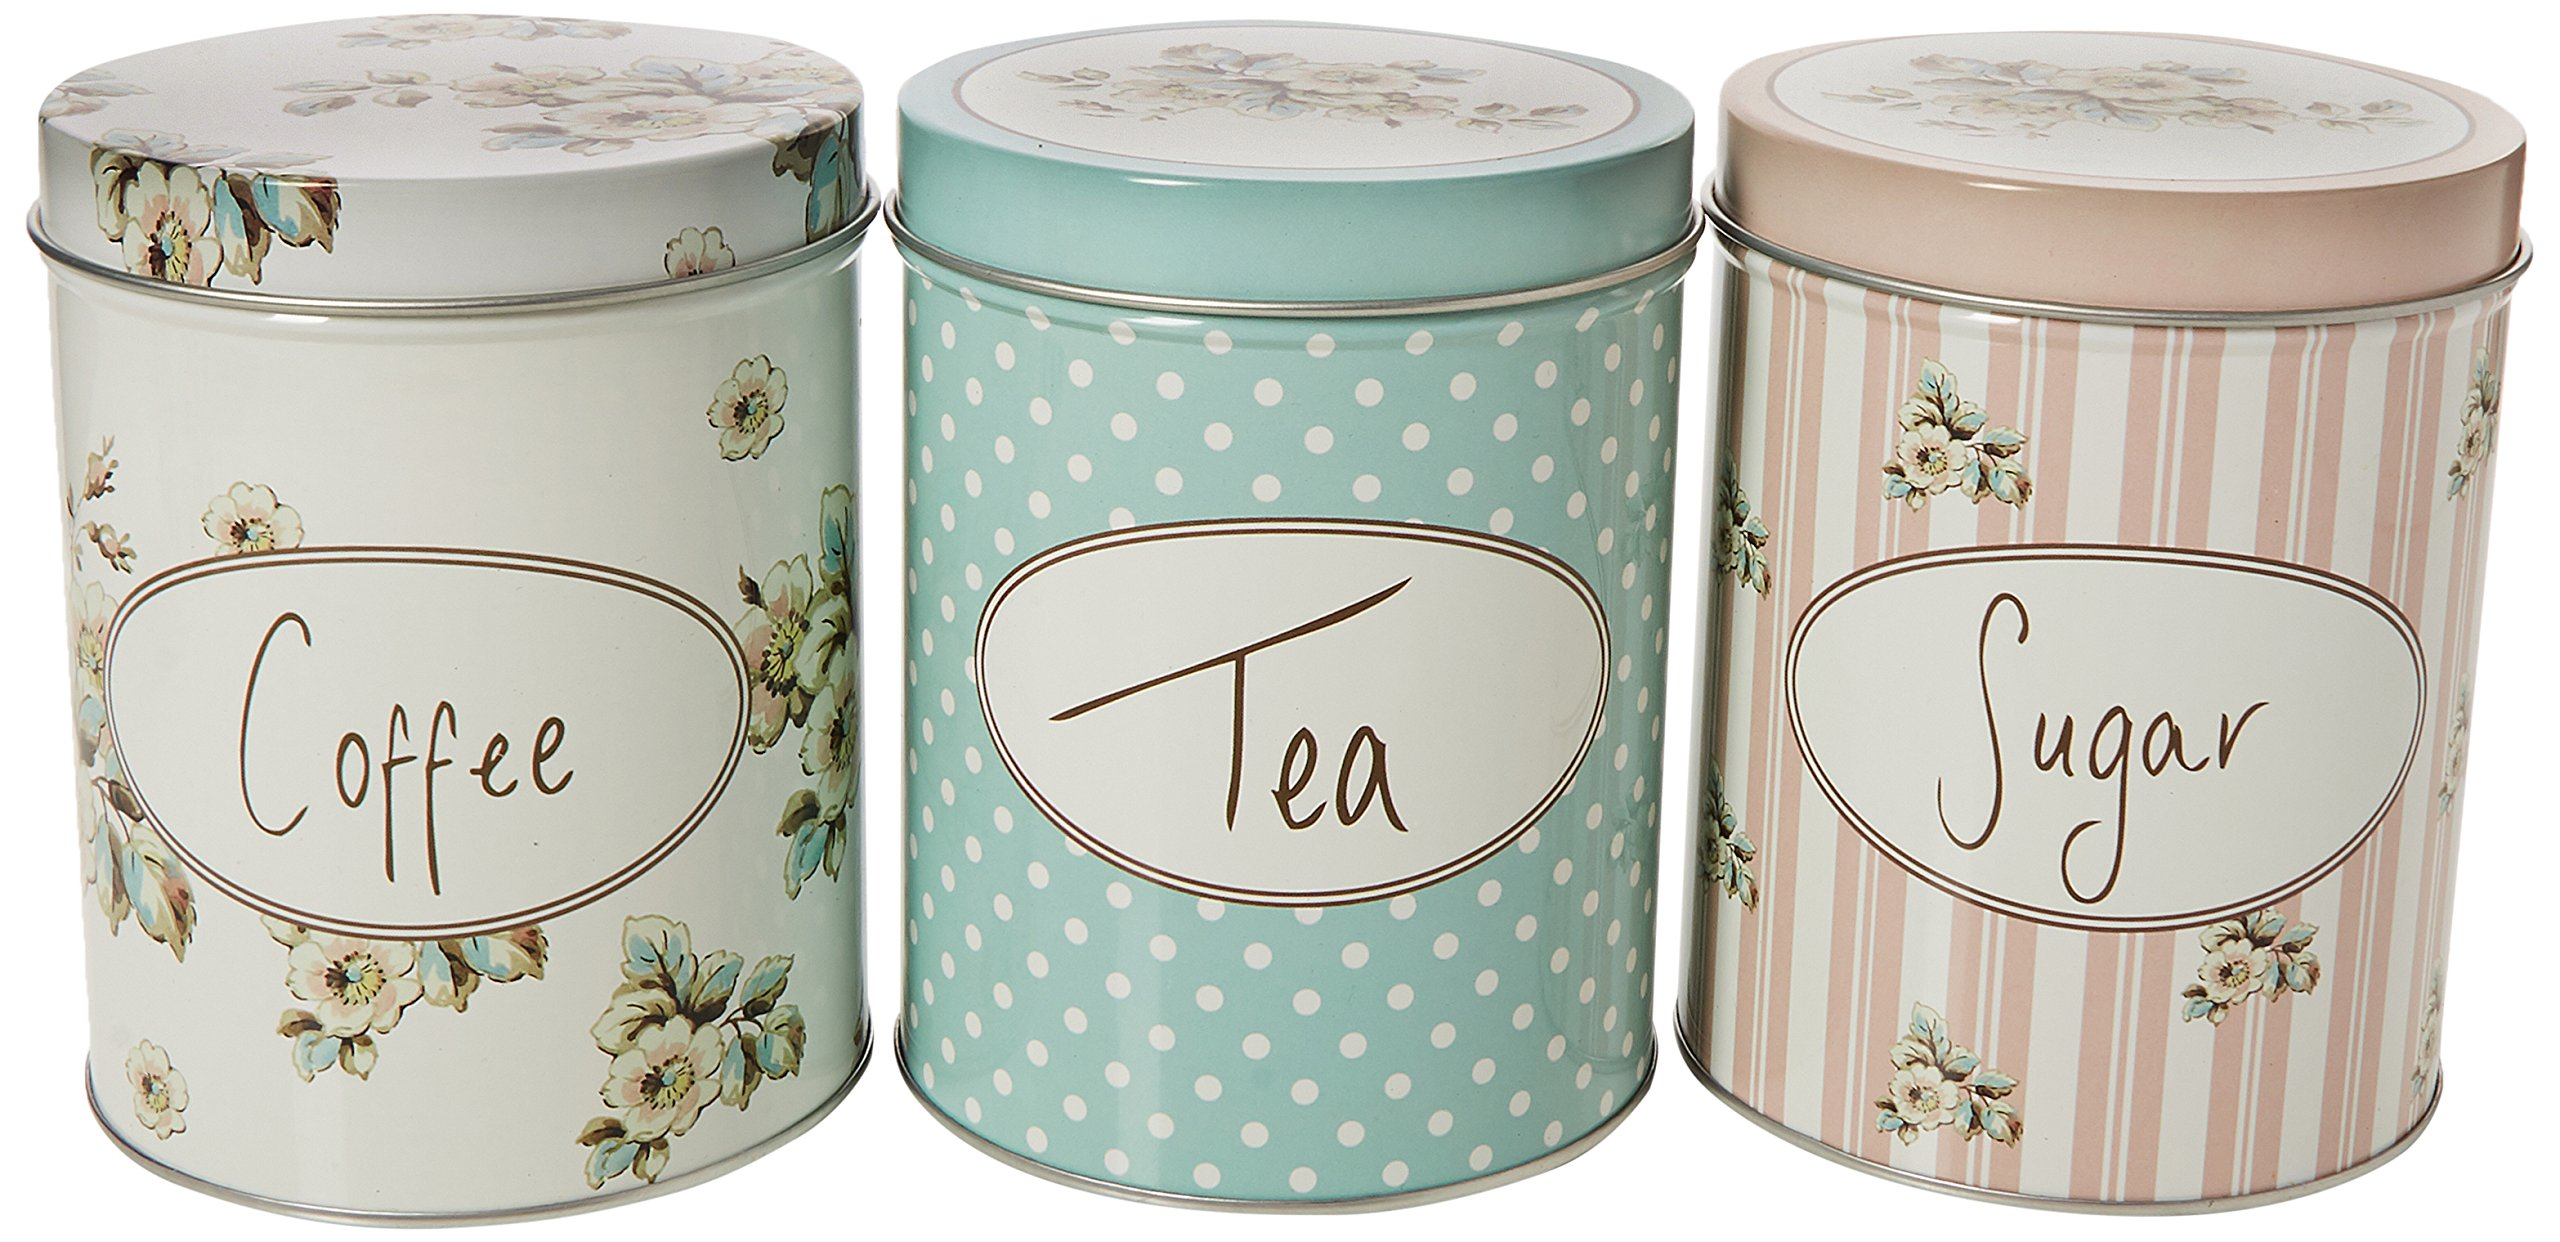 Katie Alice - Set Of Three Cottage Flower Large Coffee, Sugar & Tea Storage Tins by Creative